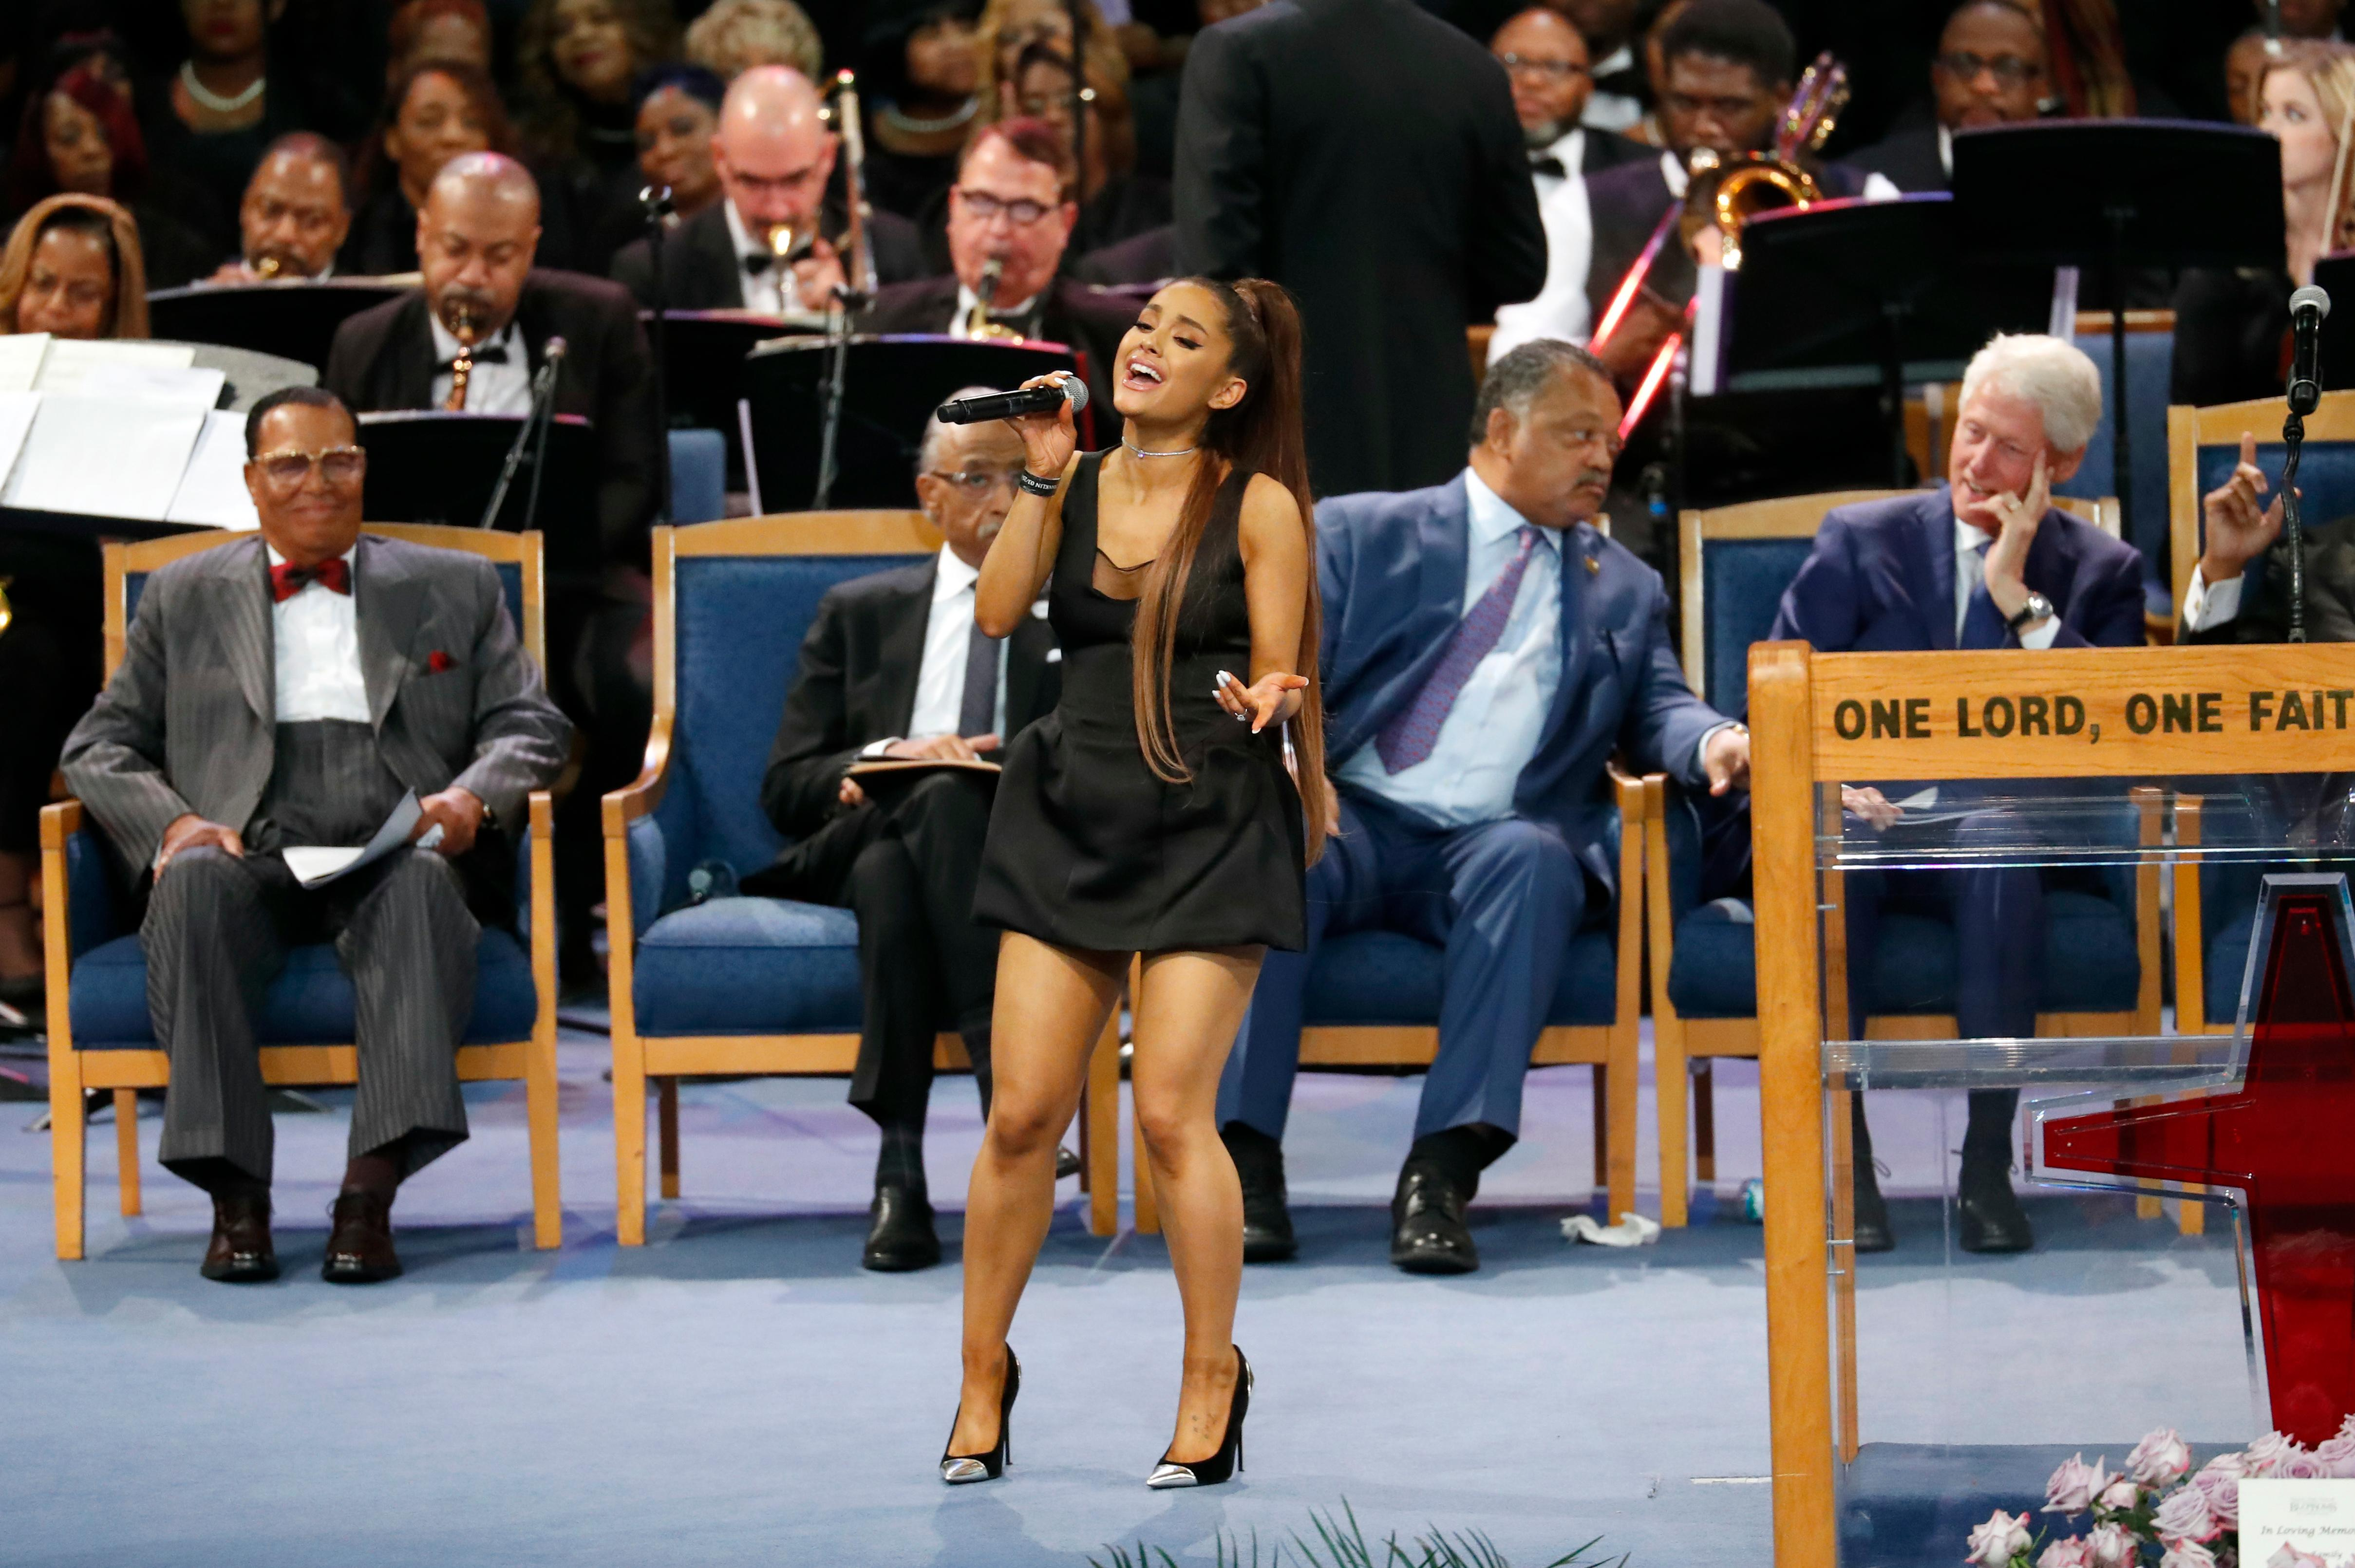 Ariana Grande performs during the funeral service for Aretha Franklin at Greater Grace Temple, Friday, Aug. 31, 2018, in Detroit.(AP Photo/Paul Sancya)